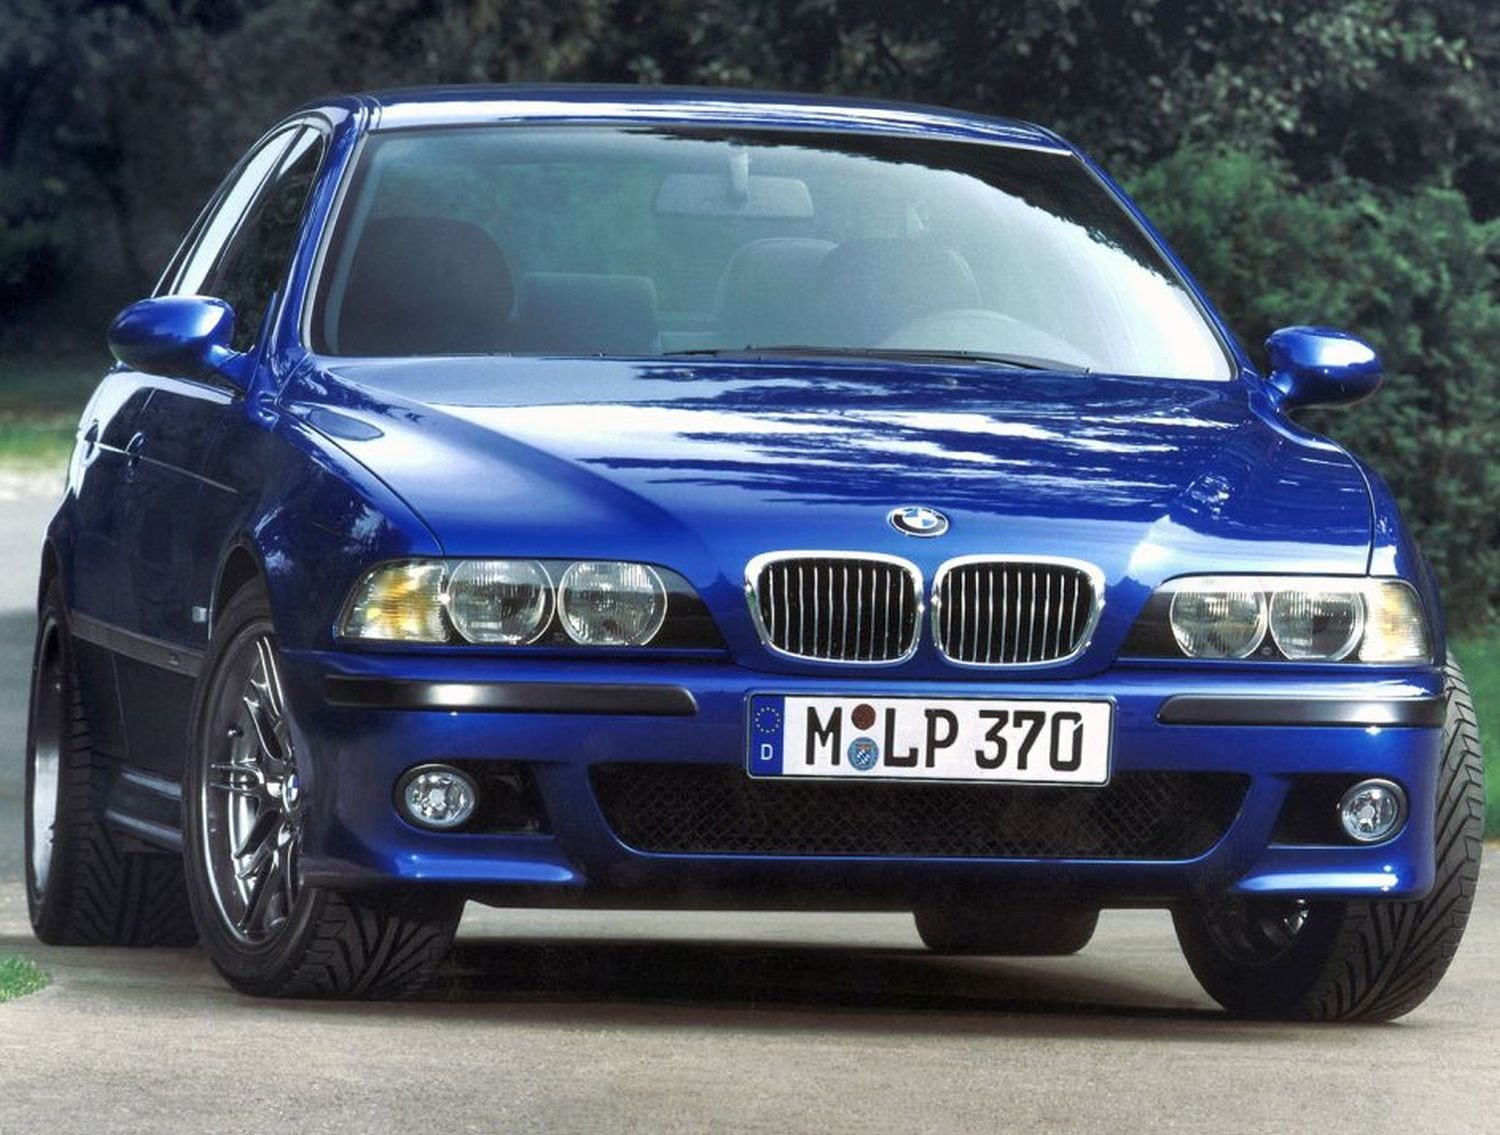 Bmw M5 E39s 1999 2003 Specs Speed Power Carbon Dioxide Emissions Fuel Economy And Performance